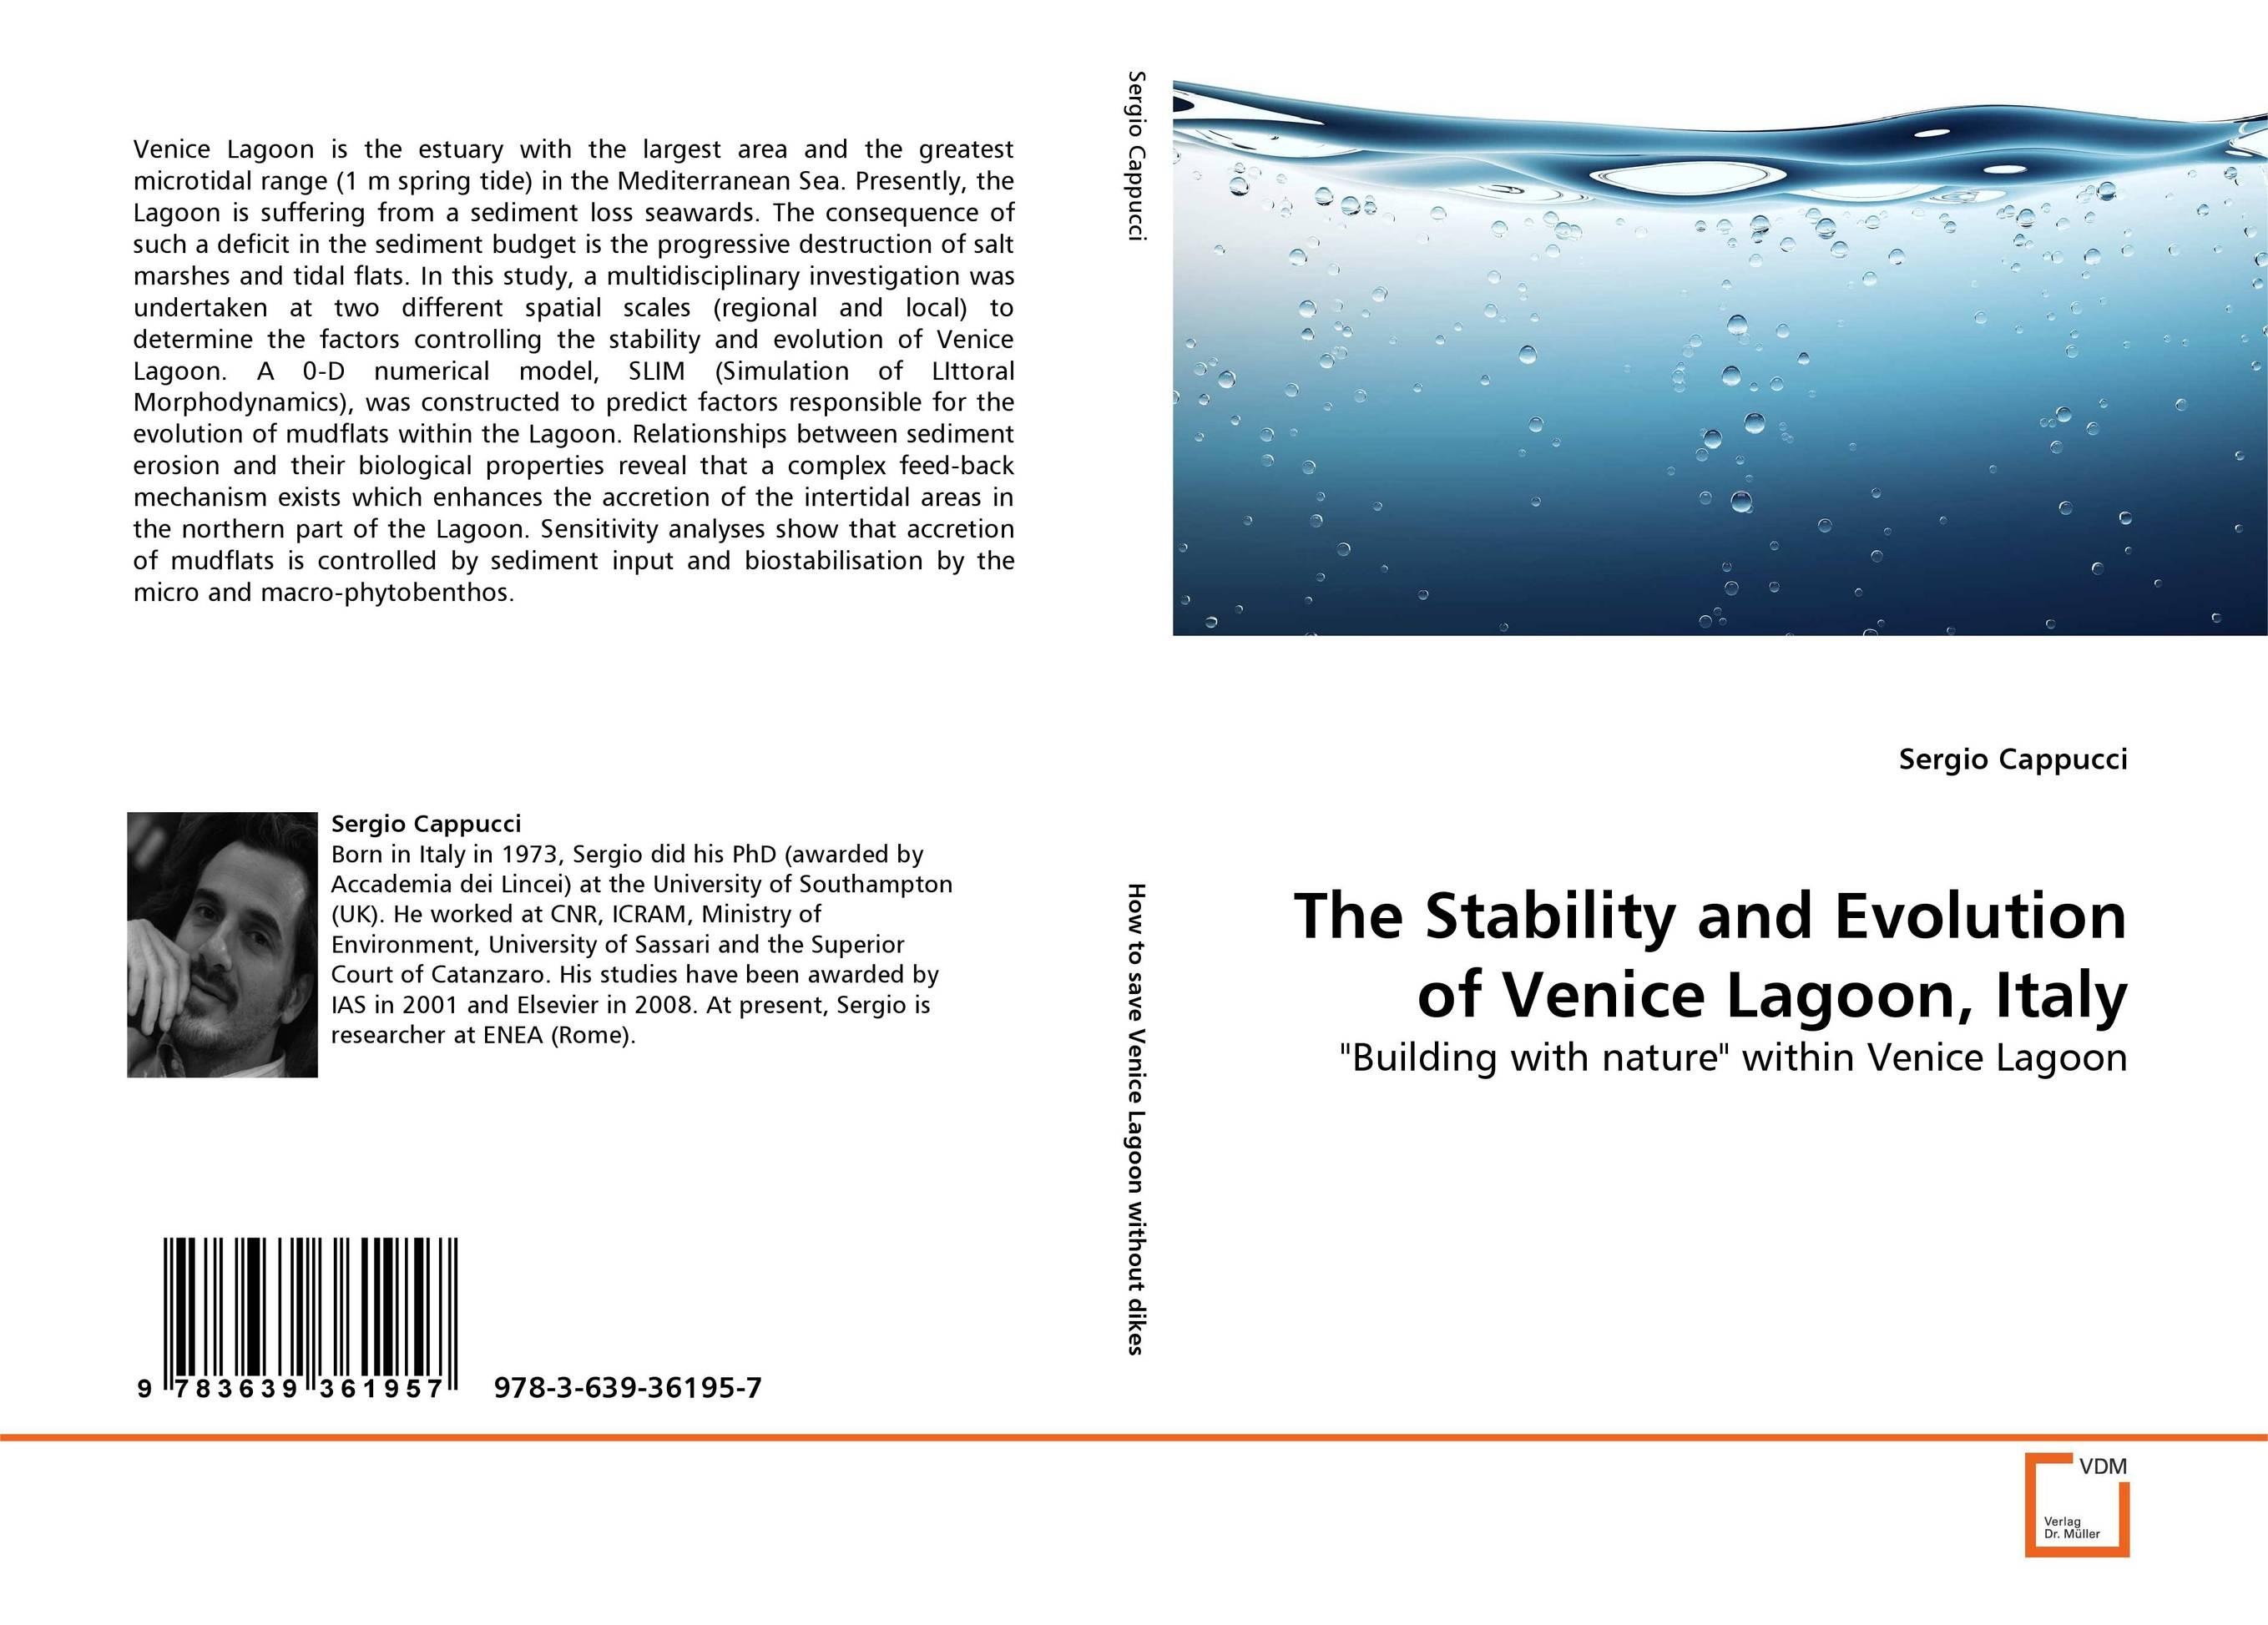 The Stability and Evolution of Venice Lagoon, Italy merchant of venice the